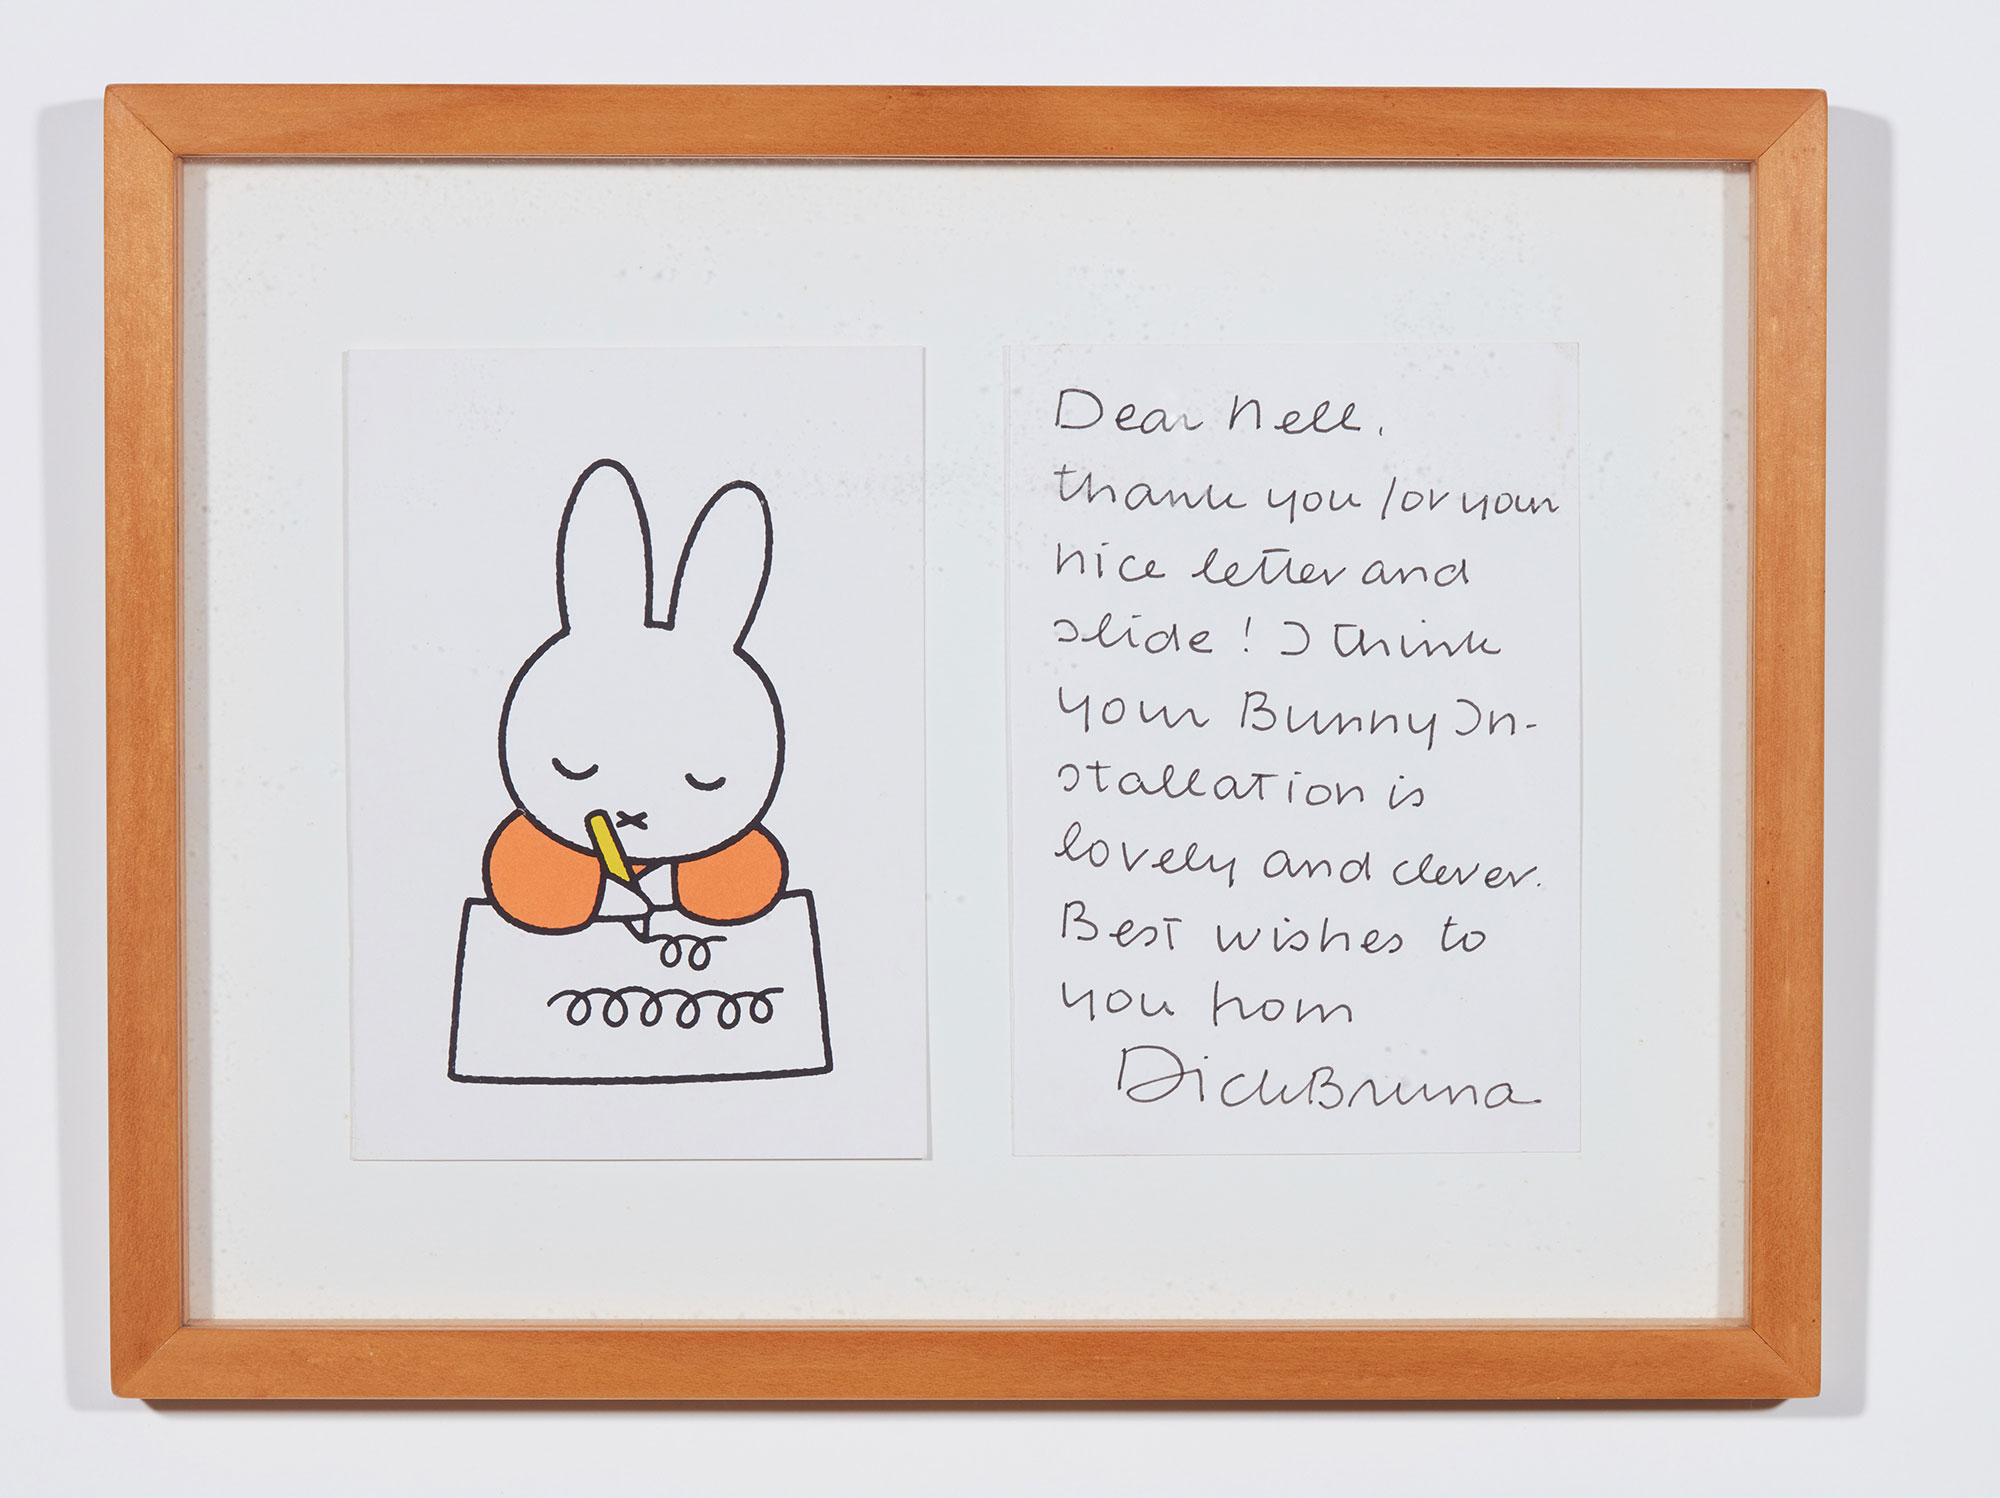 miffy writing a letter